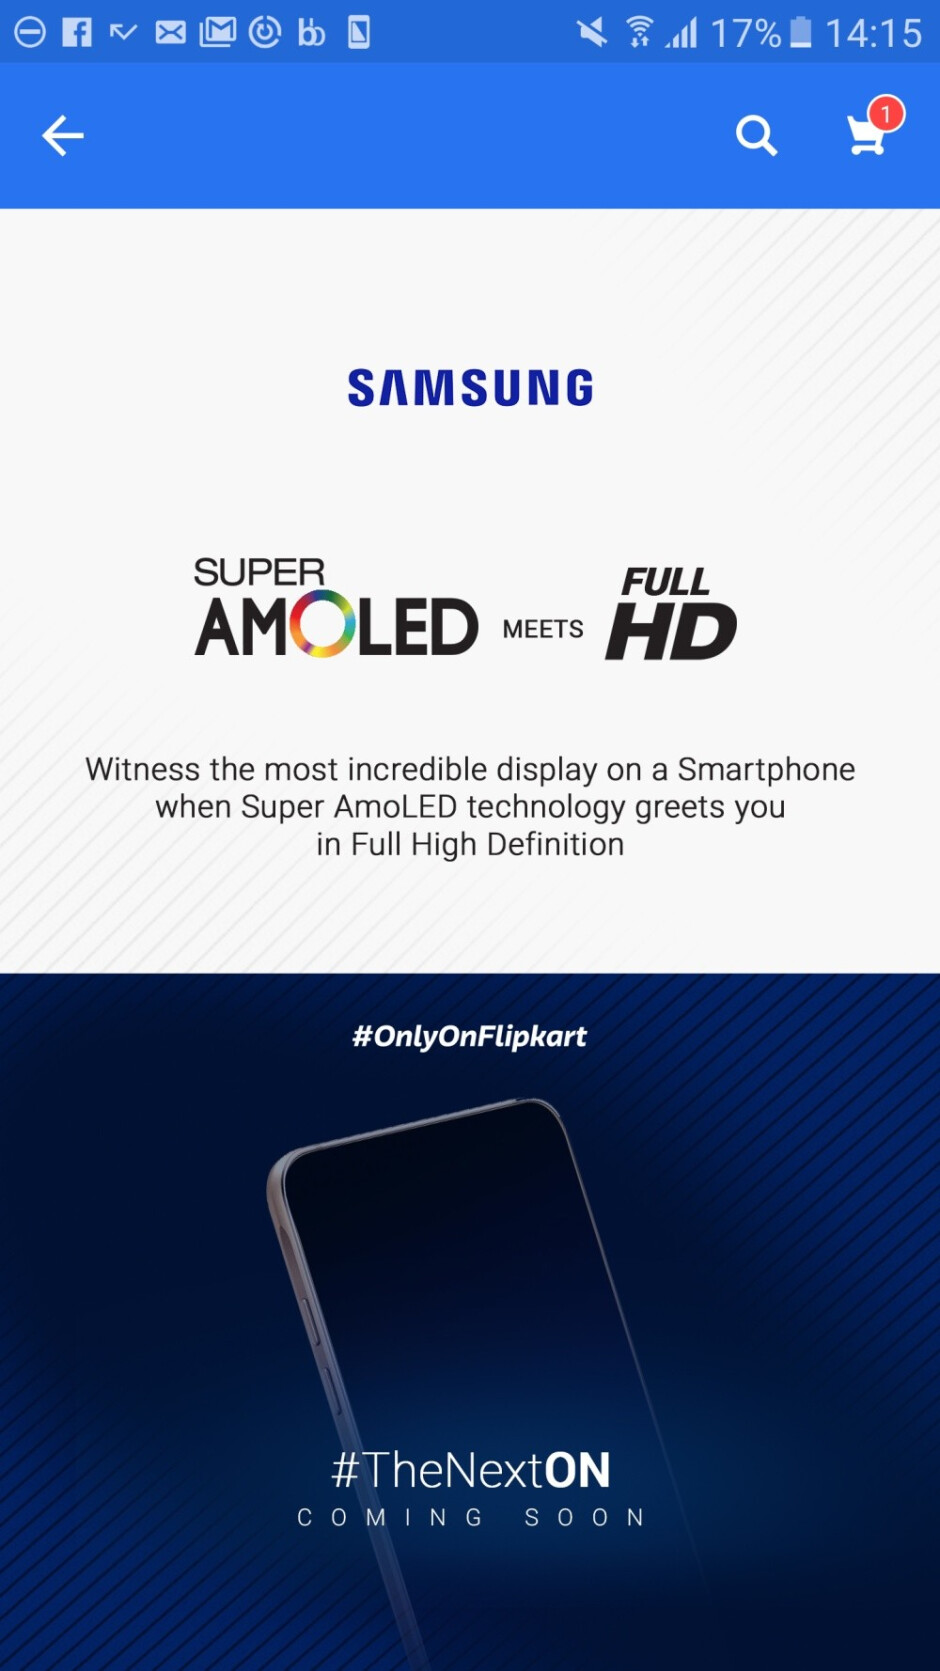 Samsung Galaxy On8 gets teased with Super AMOLED display